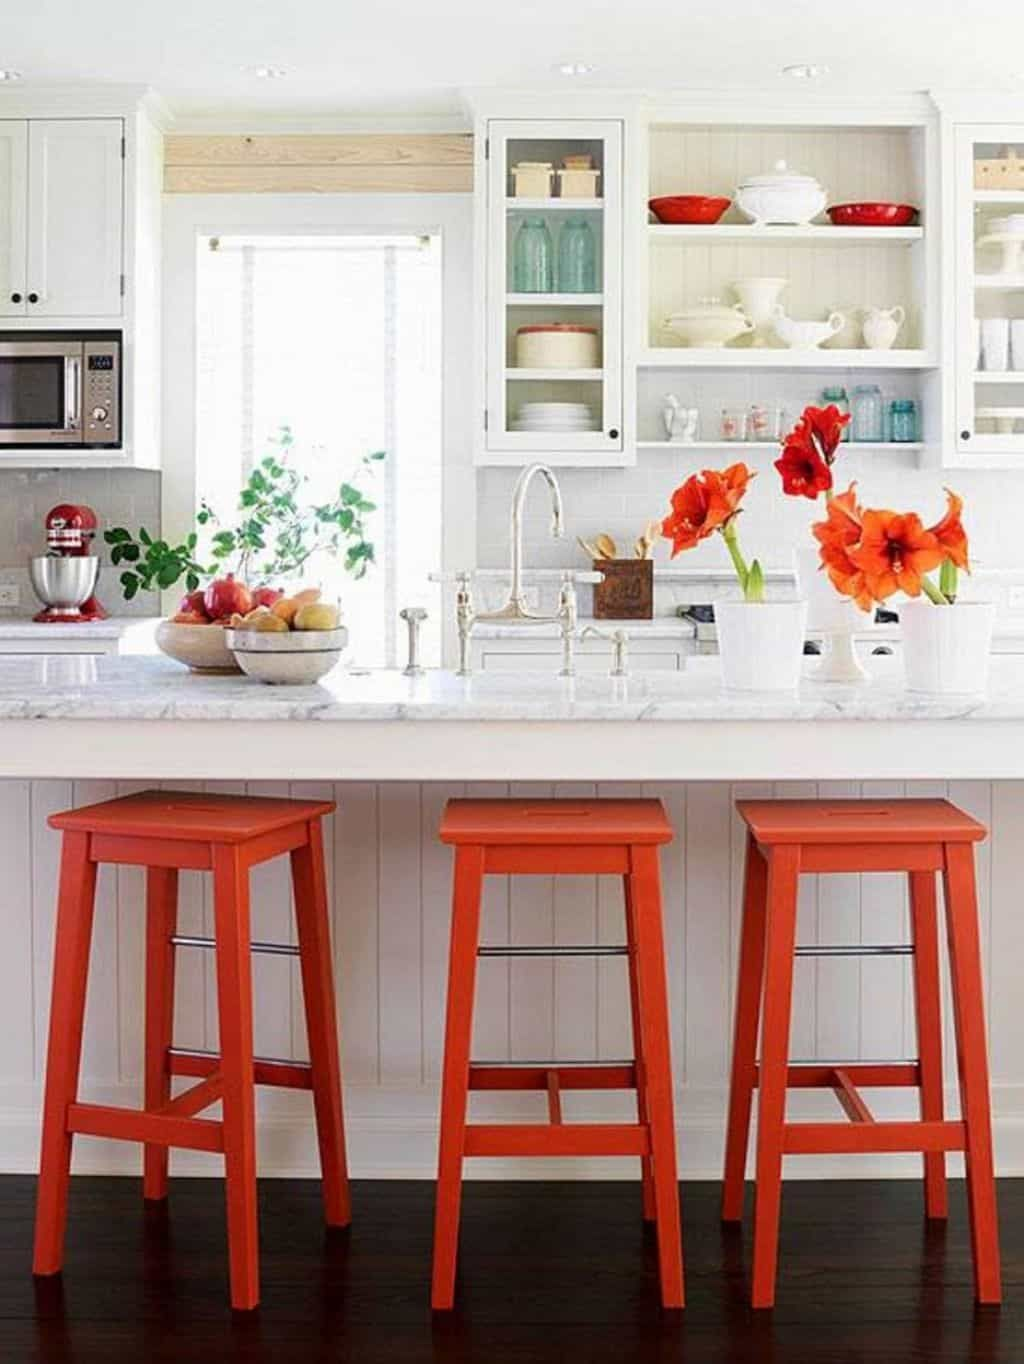 White Kitchen With Orange Flowers And Stools Country Kitchen Decor Country Kitchen Kitchen Decor